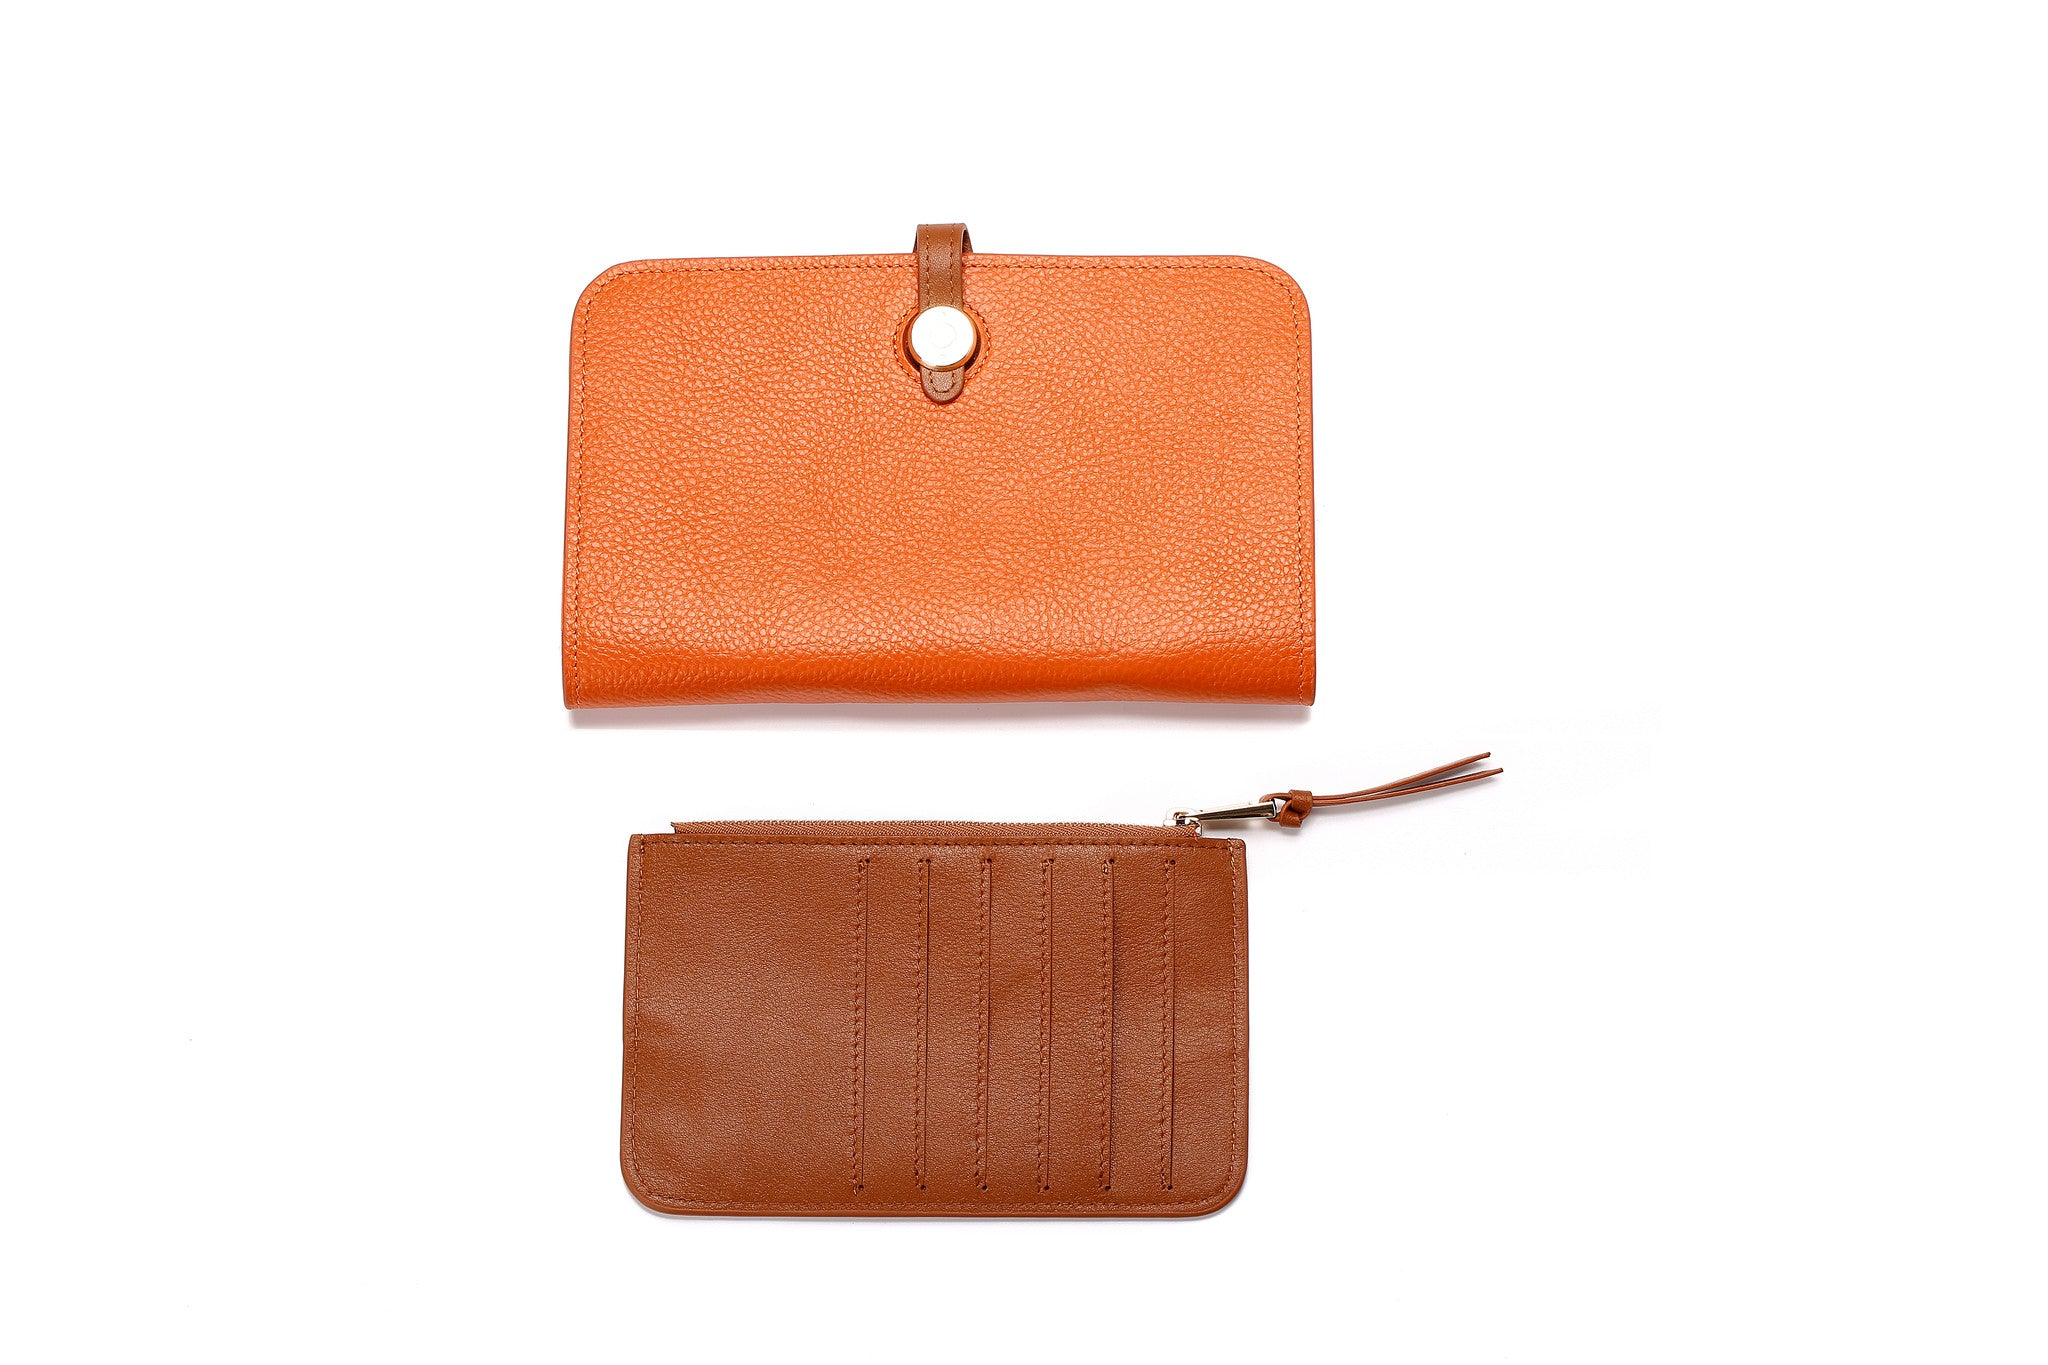 Jetsetter Wallet Crossbody Bag - Pumpkin Pie